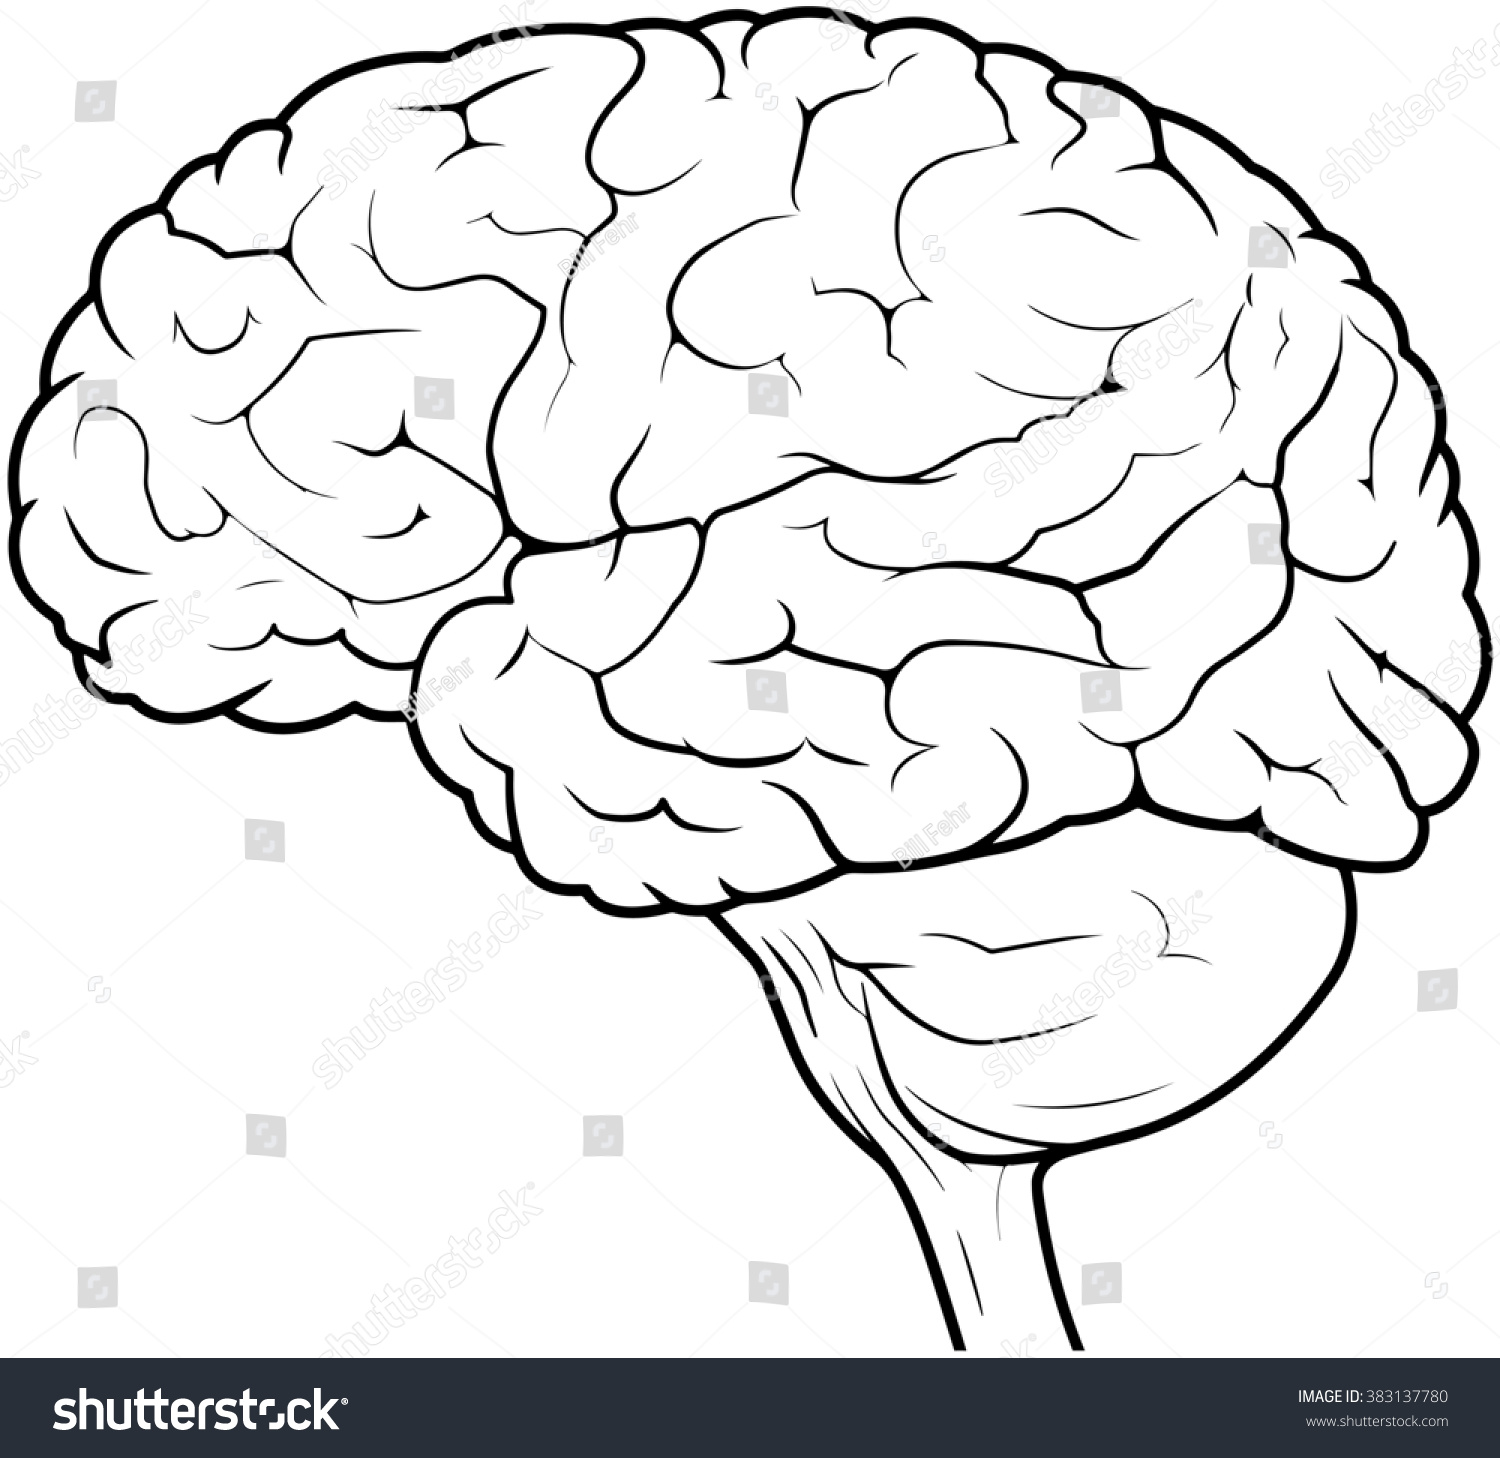 Side View Line Drawing Of A Human Brain Stock Photo ...